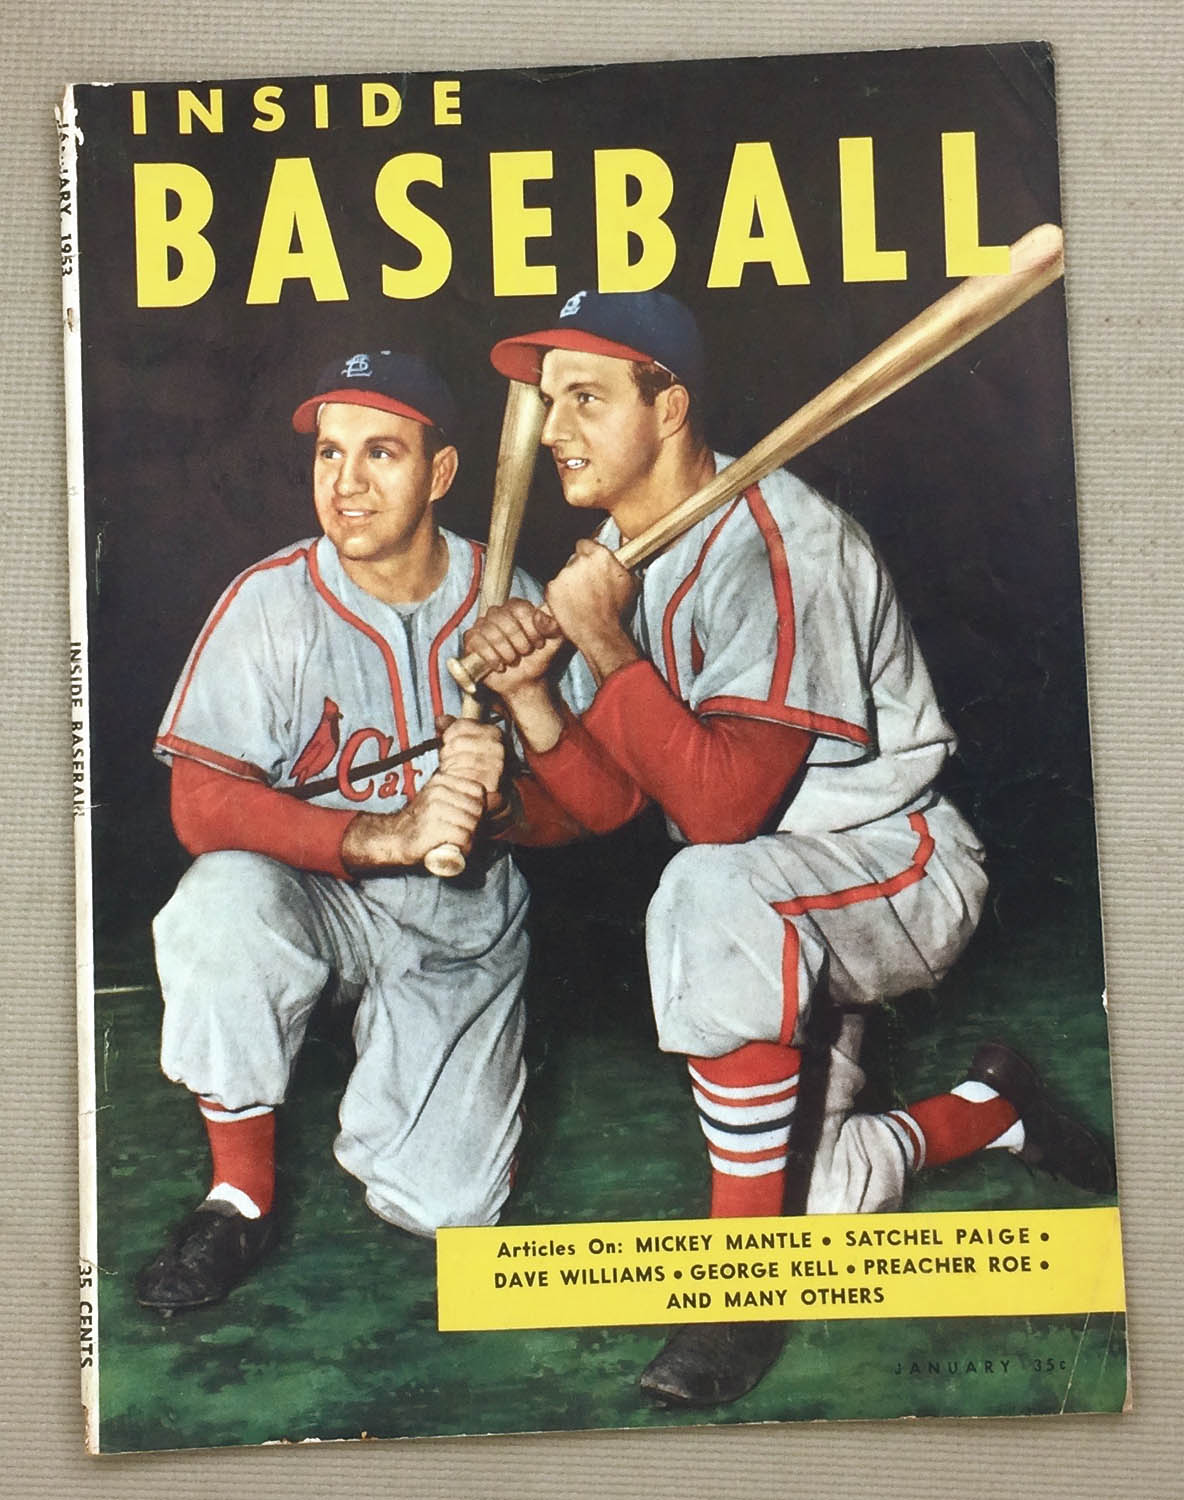 Inside baseball January 1953 Issue